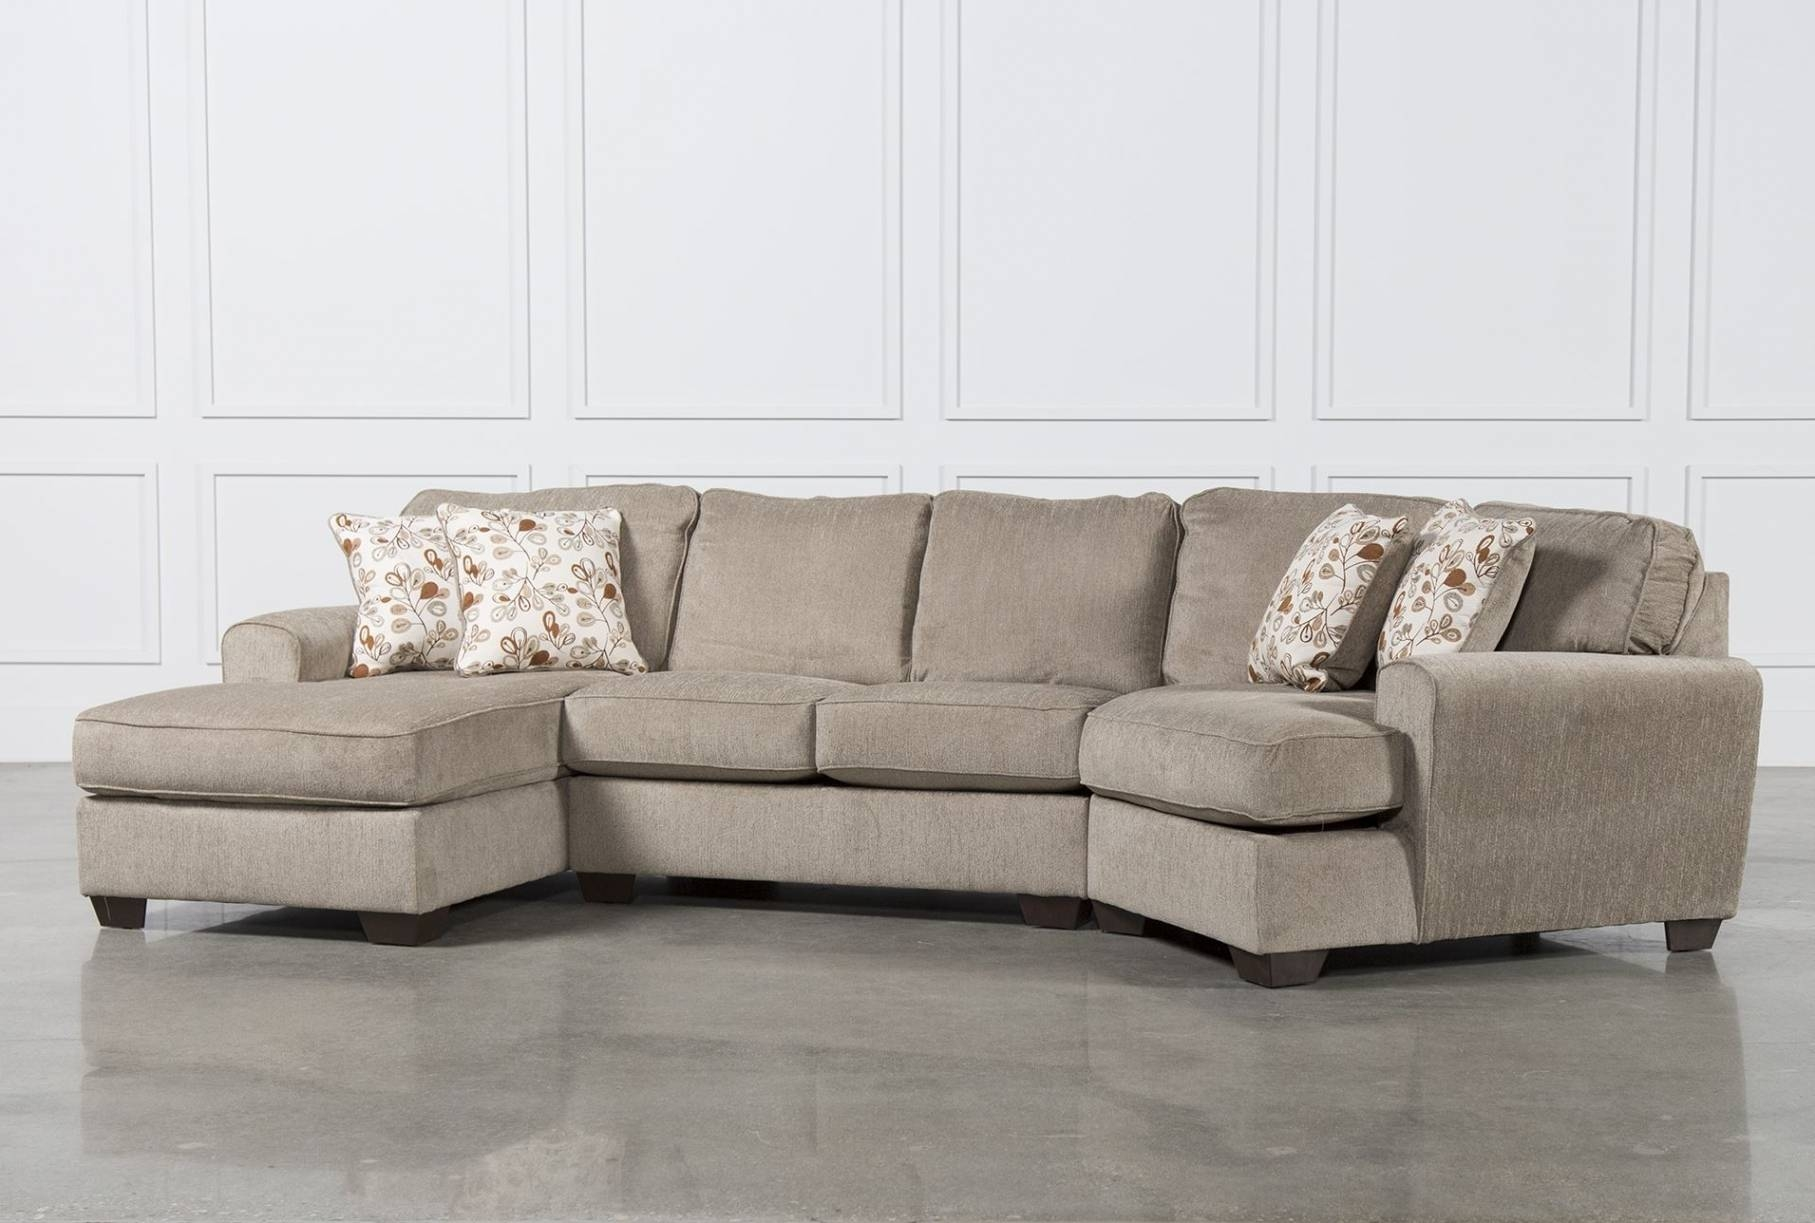 Elegant Angled Sofa Sectional 23 For Sectional Sofas With inside Angled Sofa Sectional (Image 12 of 30)